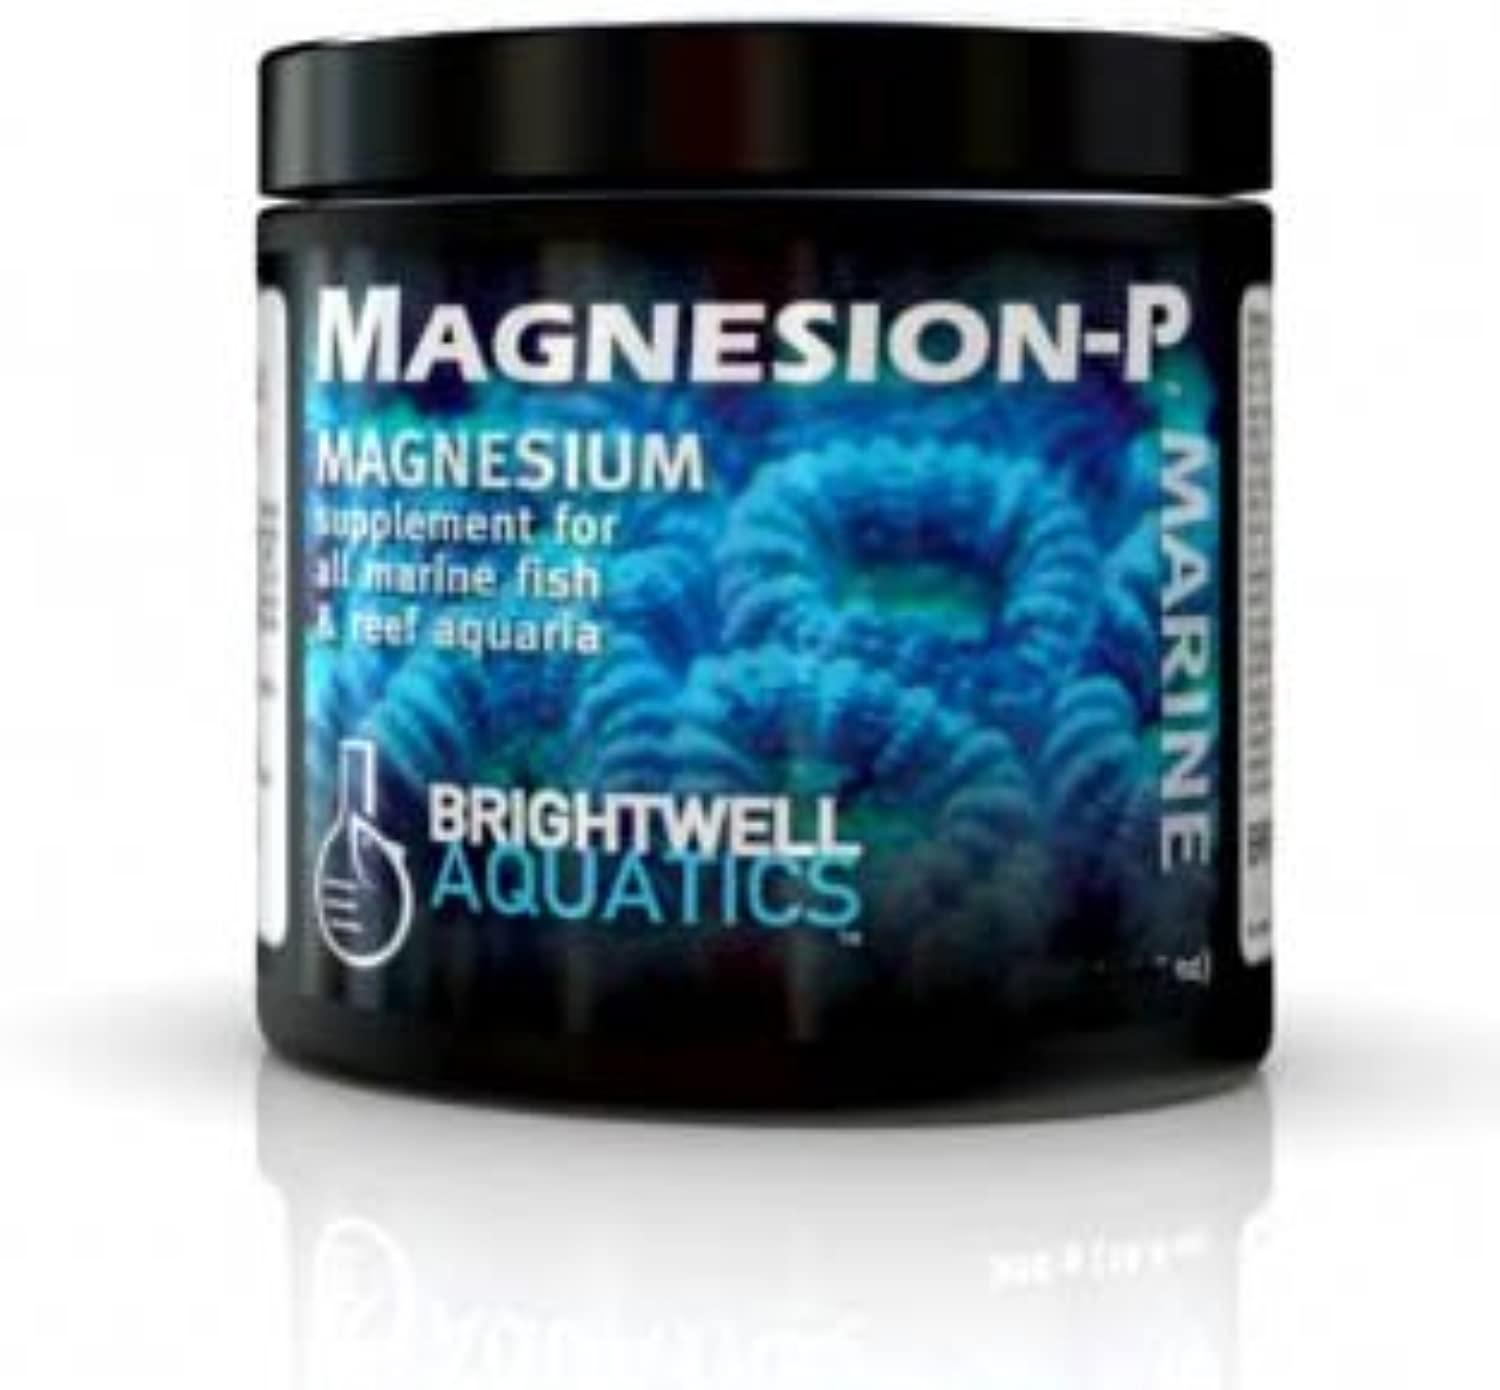 Brightwell Aquatics Magnesium Supplement for Marine & Reef Aquaria, 800g